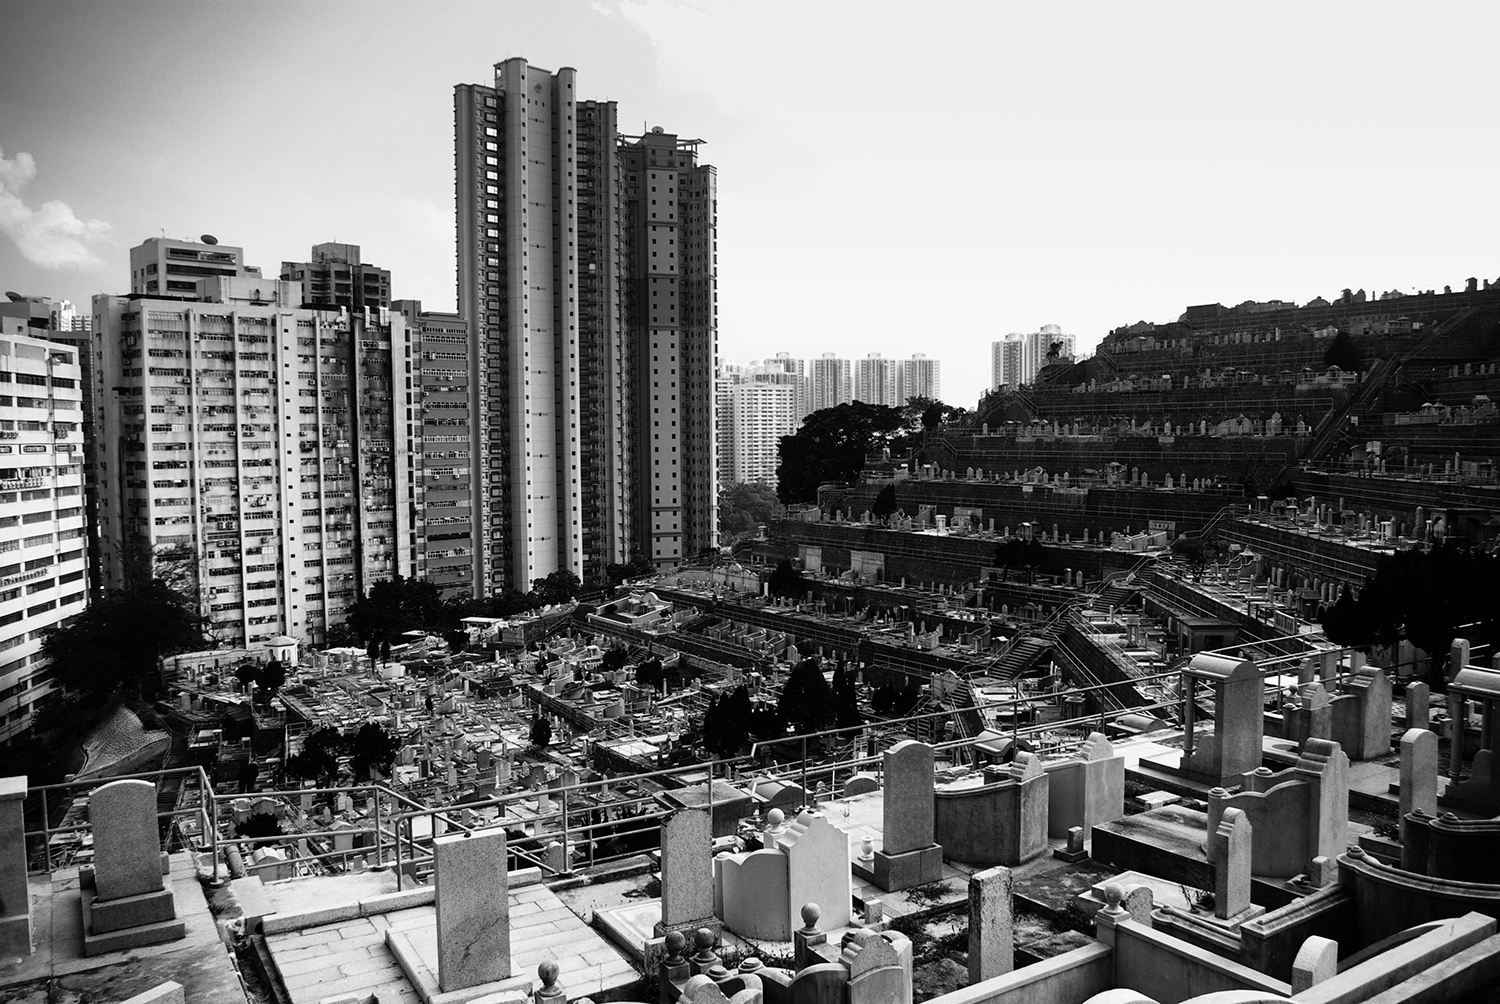 <p>The terraced Chinese Permanent Cemetery hugs the hillsides behind the high-rise towers of Aberdeen, almost forming an ampitheatre where the ancestors can watch over their descendants. </p>